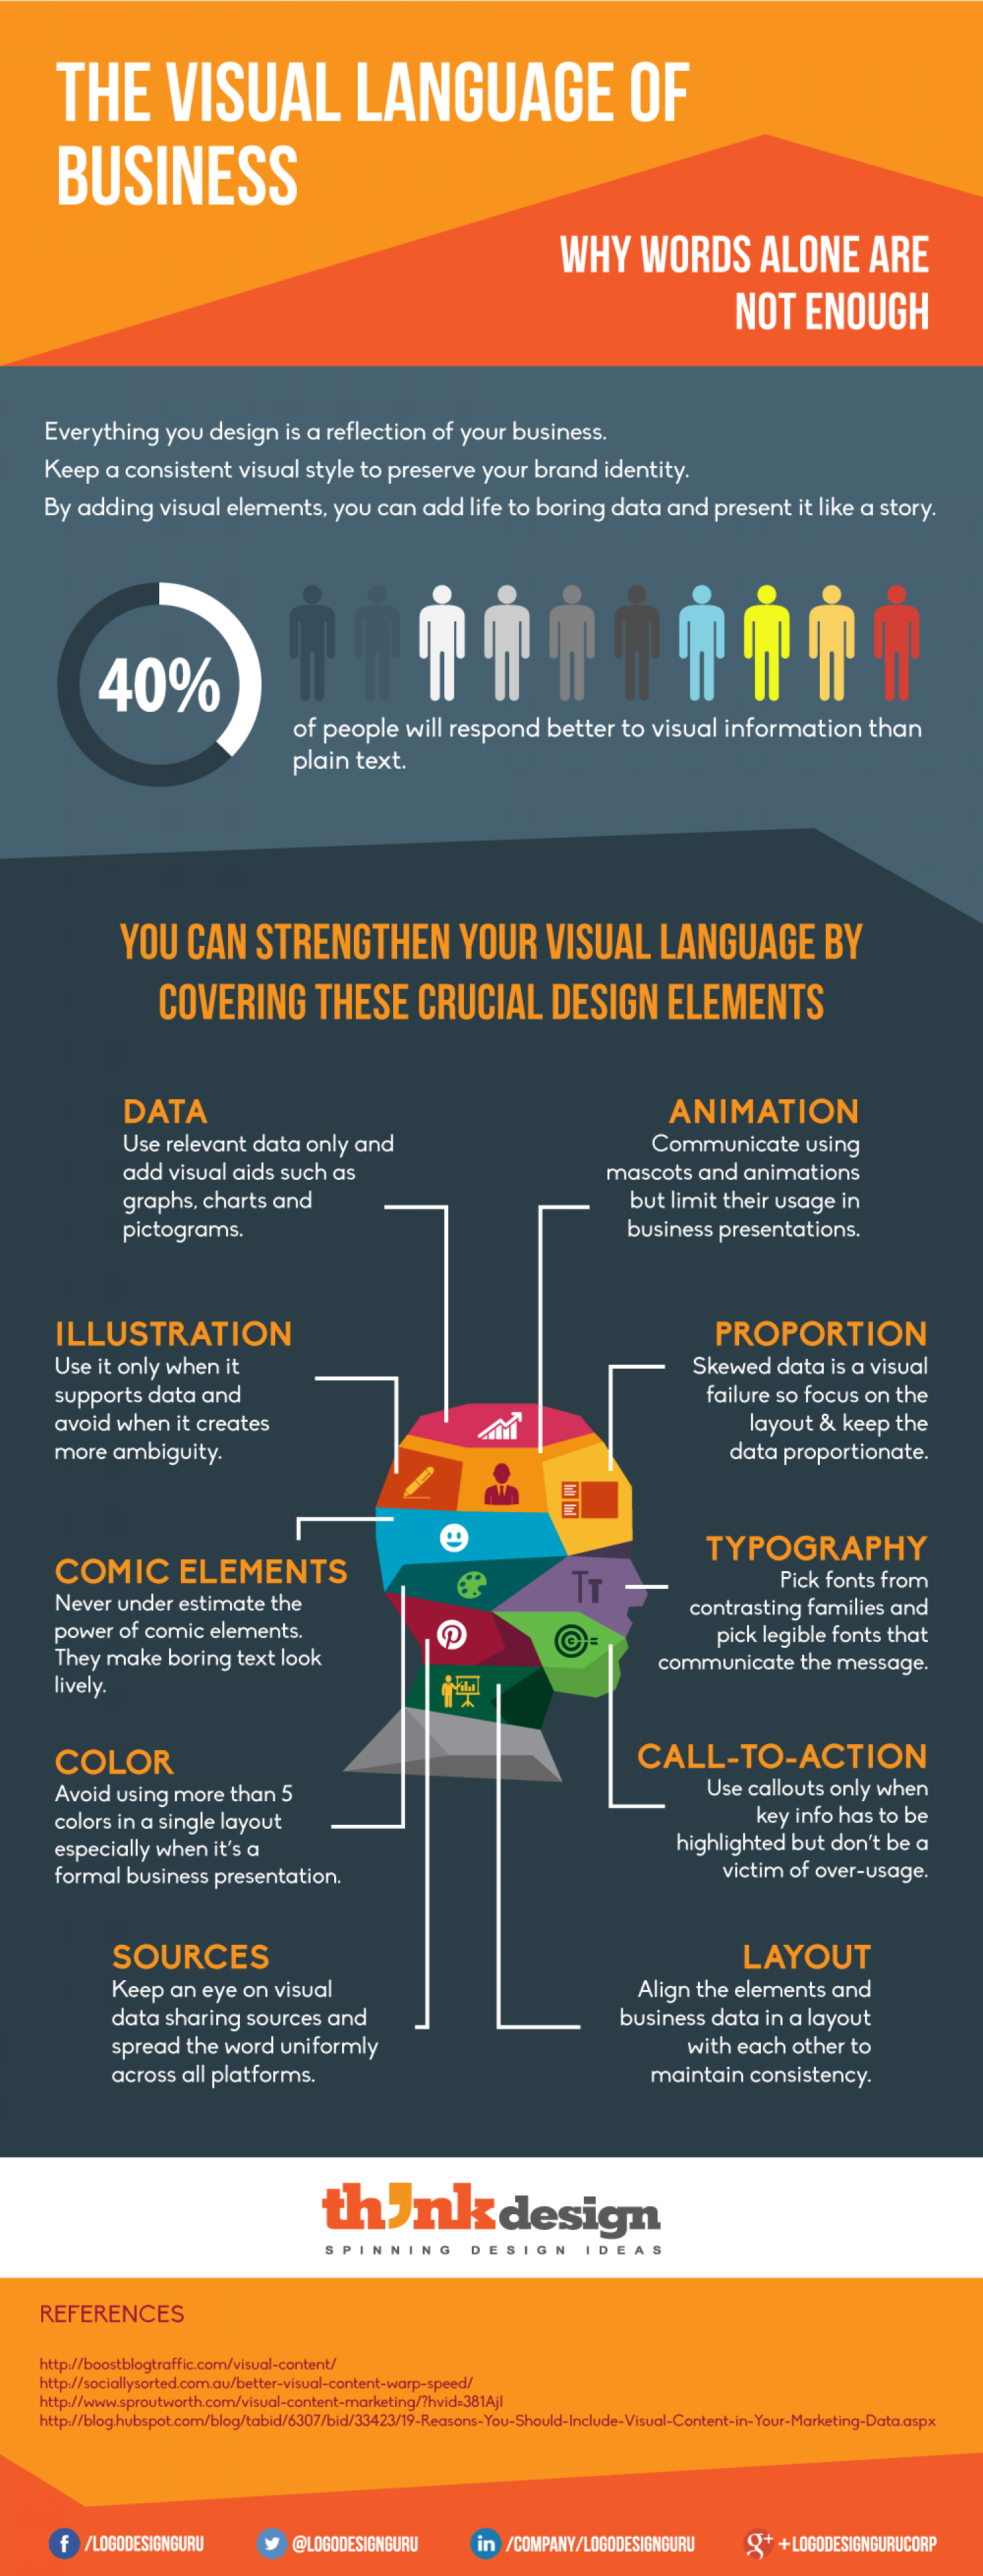 The Visual Language of Business Infographic